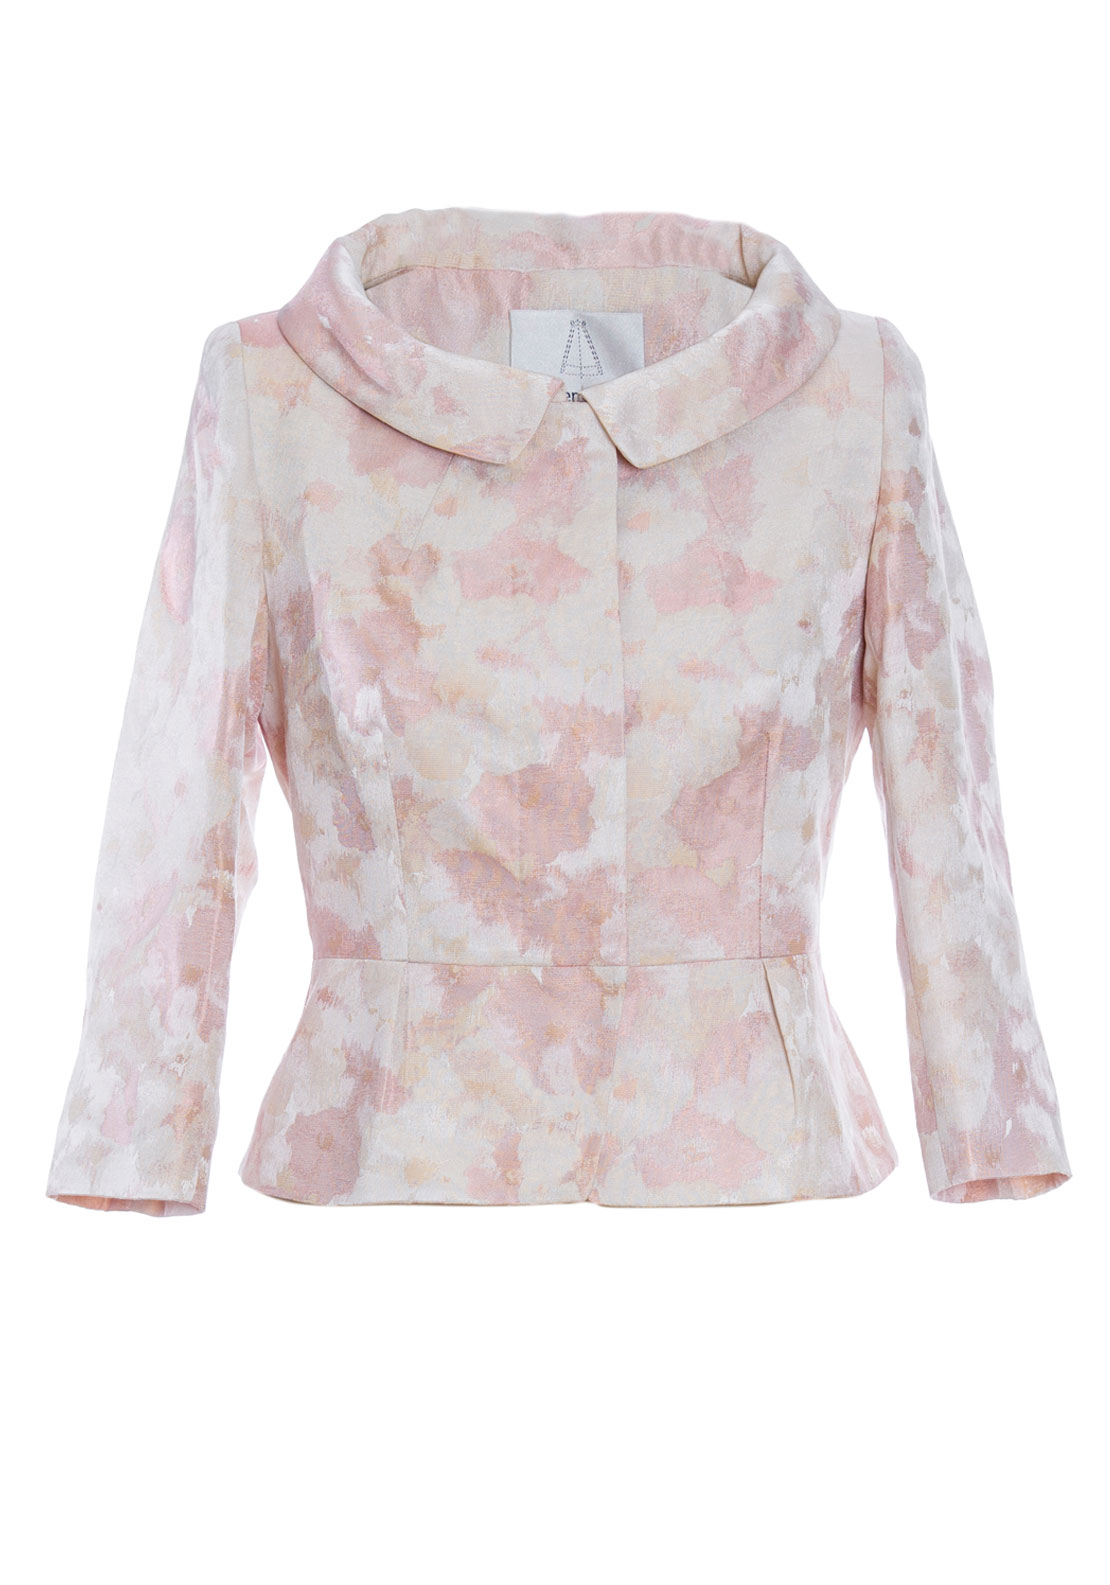 Aideen Bodkin Melia Floral Jacket, Jacquard